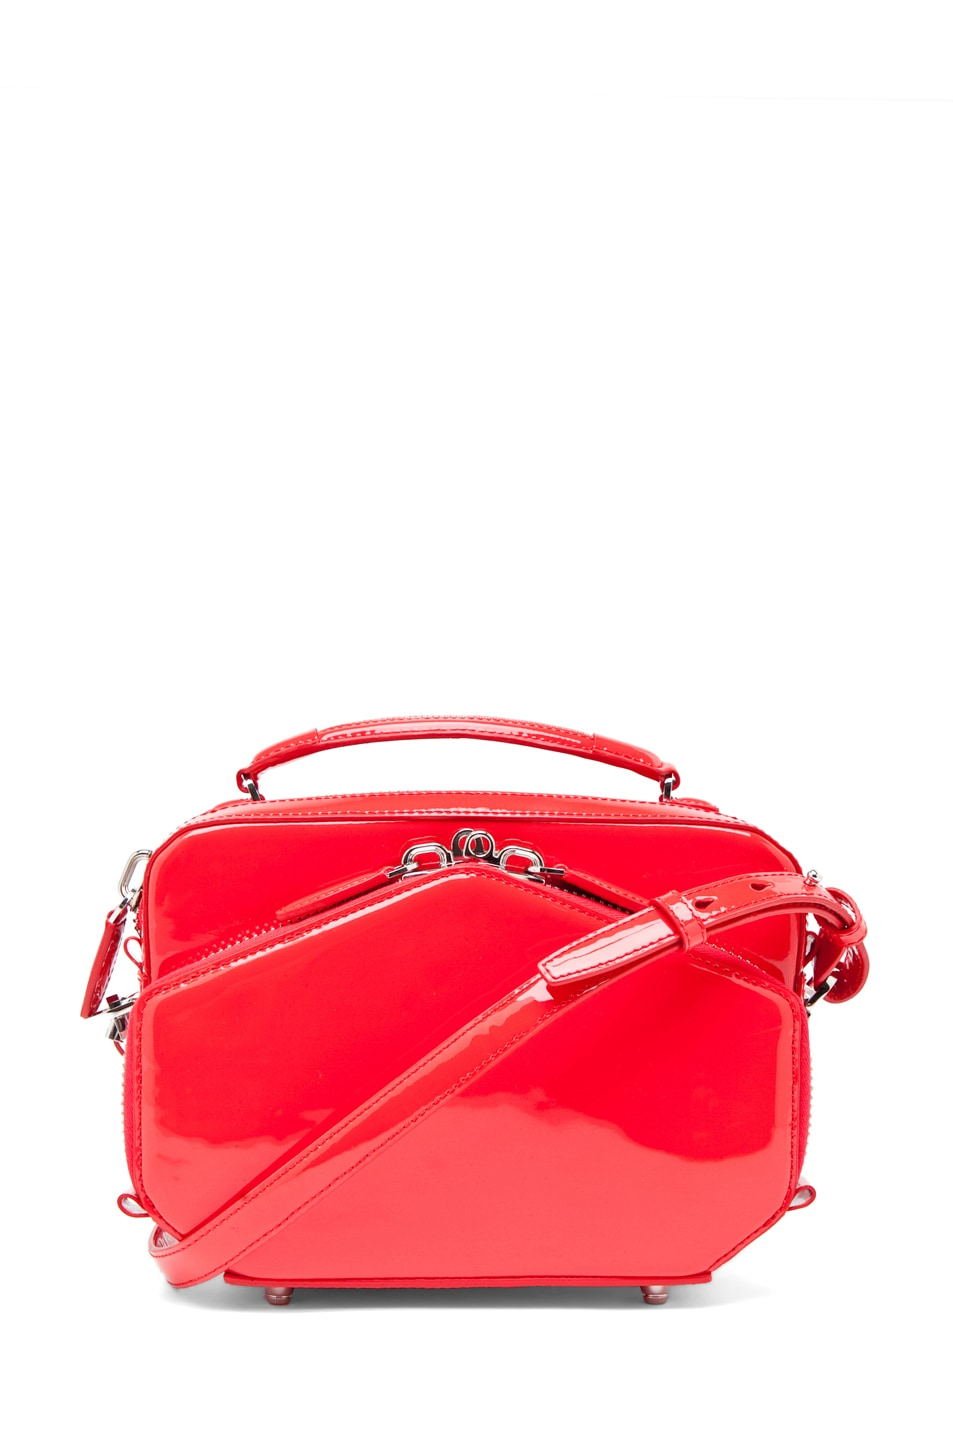 Image 1 of Alexander Wang Rafael Structured Bag in Patent Persimmon